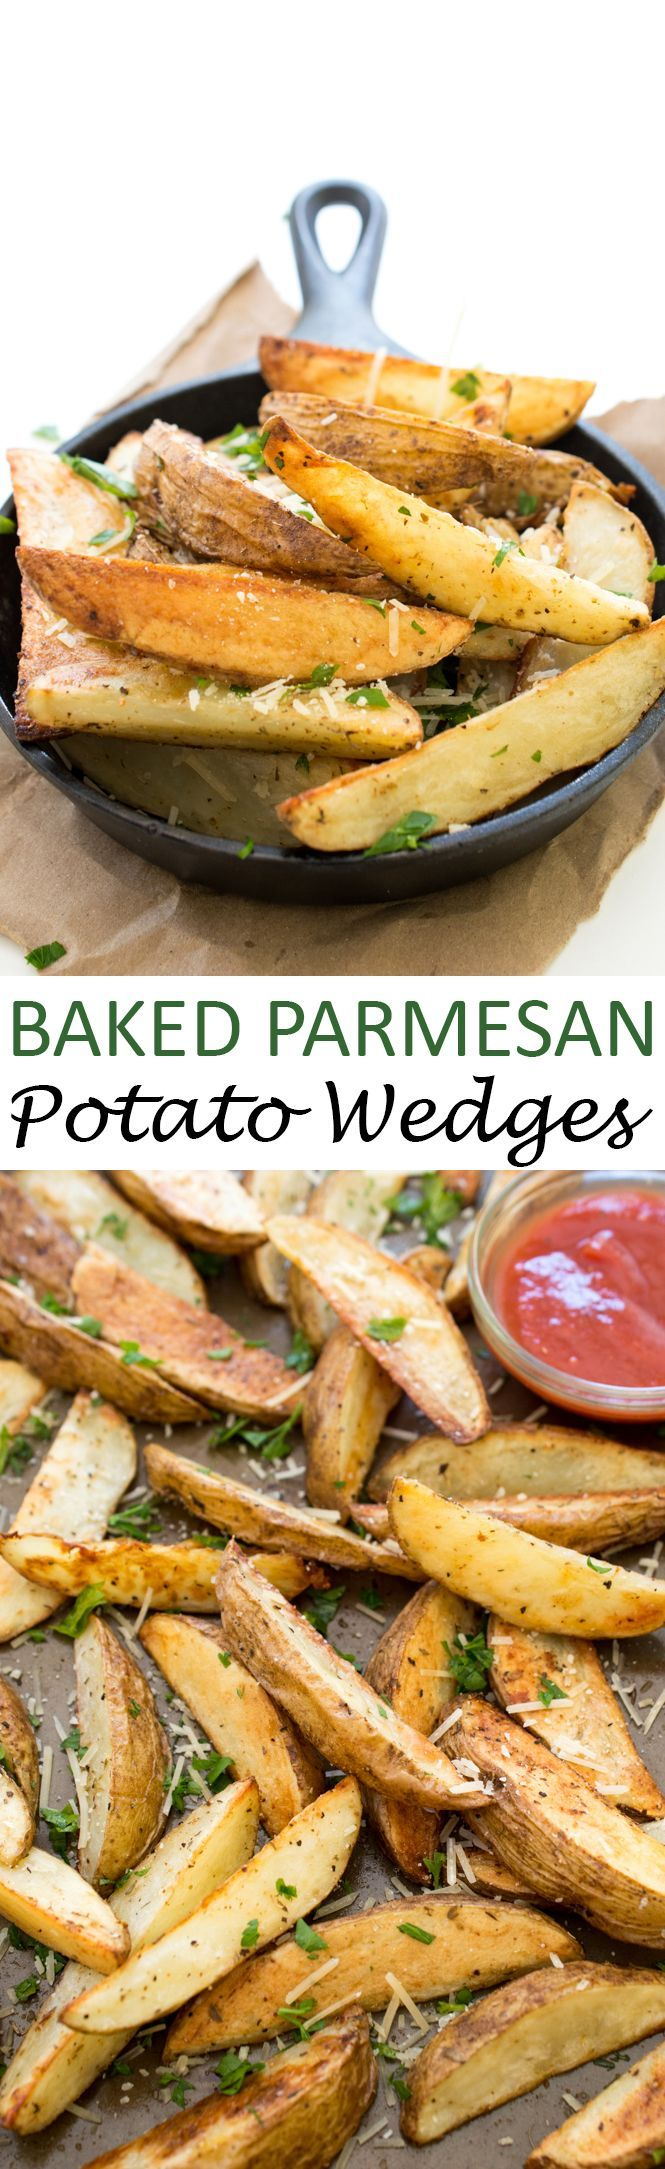 Baked Parmesan Potato Wedges. The perfect snack or side dish to complement any meal. Takes less than 45 minutes to make! | chefsavvy.com #recipe #potato baked #wedges